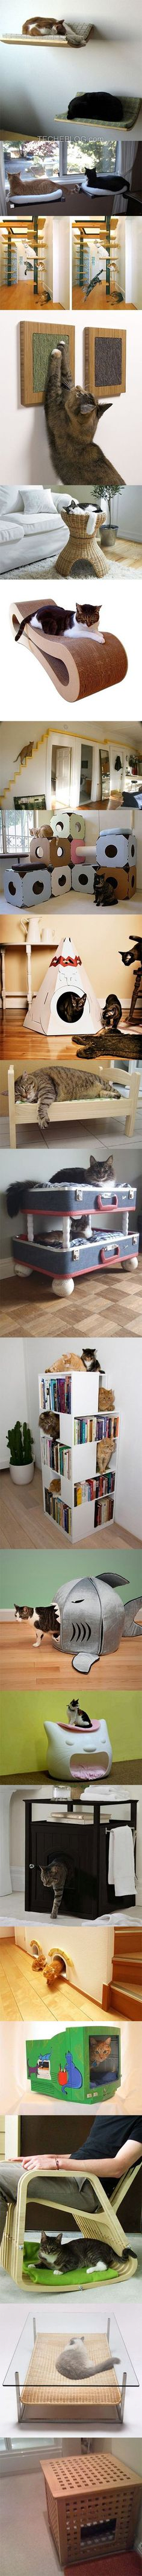 20 Fun and Geeky Furniture Designs for Cats - TechEBlog